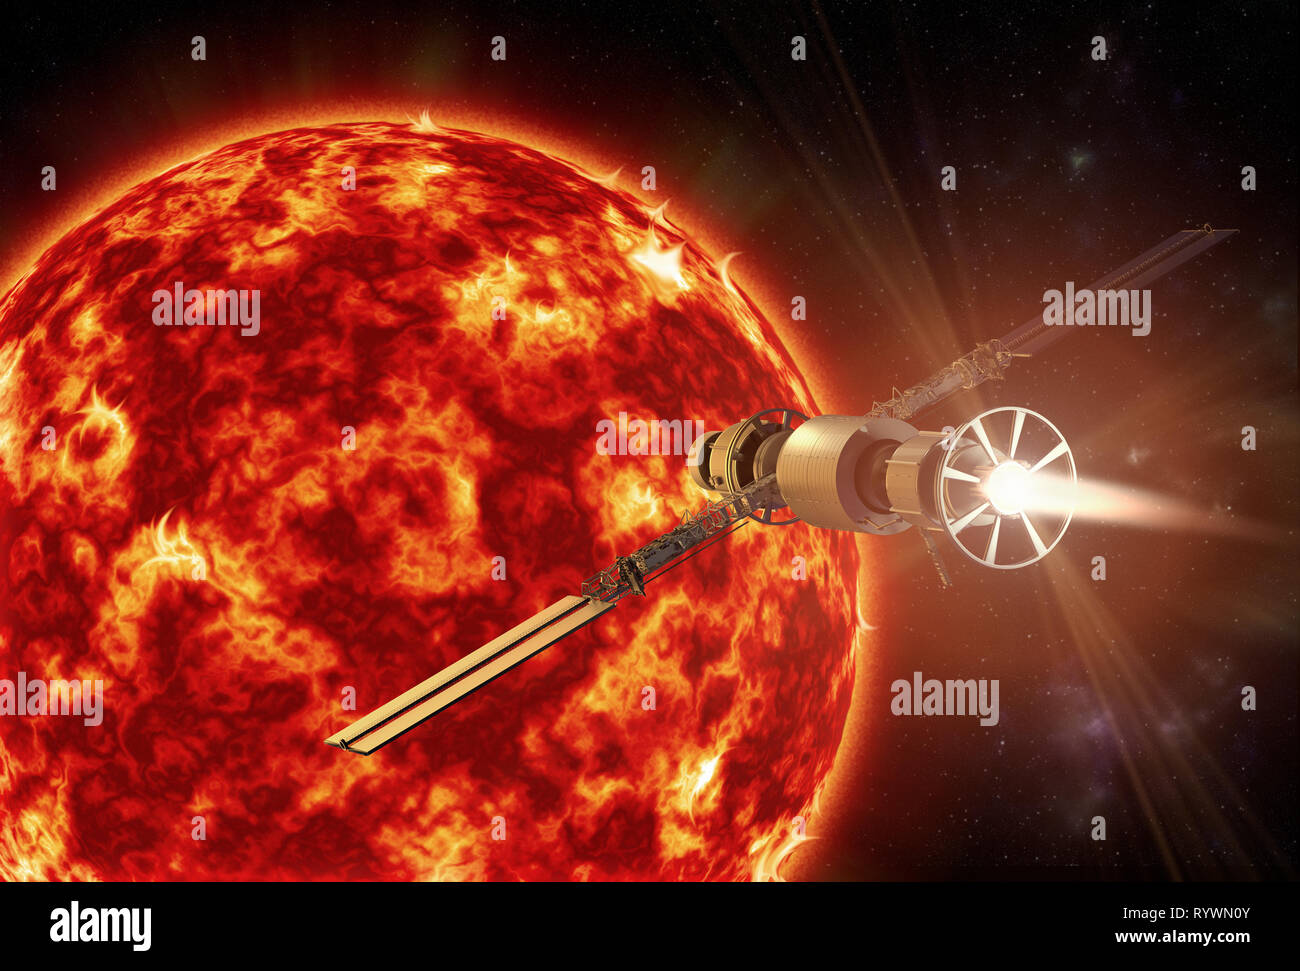 3D rendering of a spacecraft approaching the sun - Stock Image